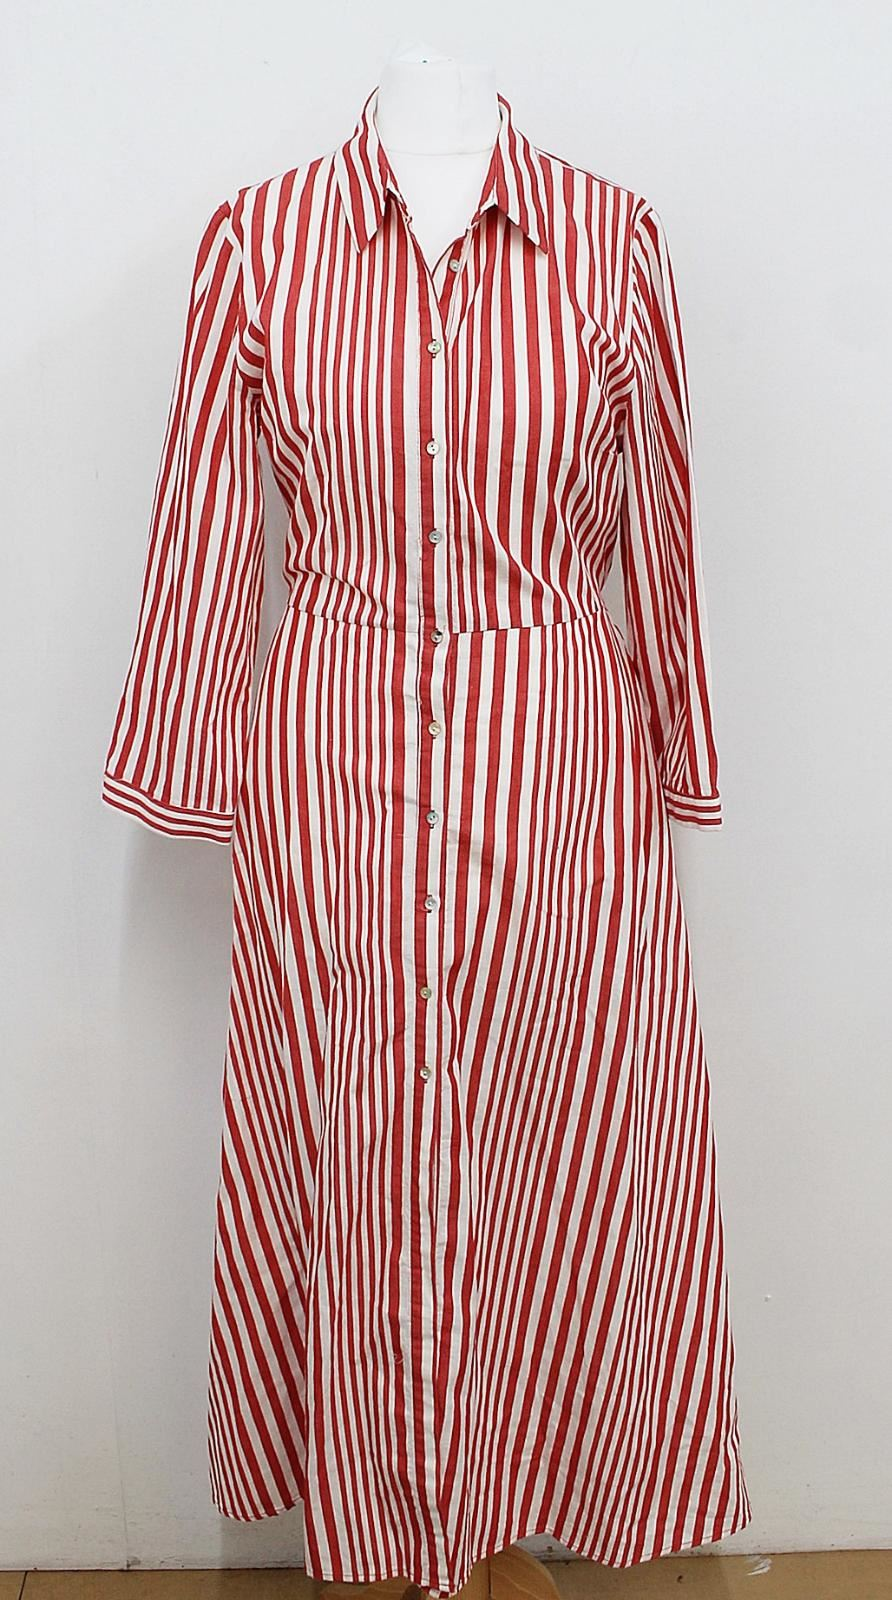 d98fe39e ZARA WOMAN Ladies Red White Stripe Patterned Belted Shirt Maxi Dress ...